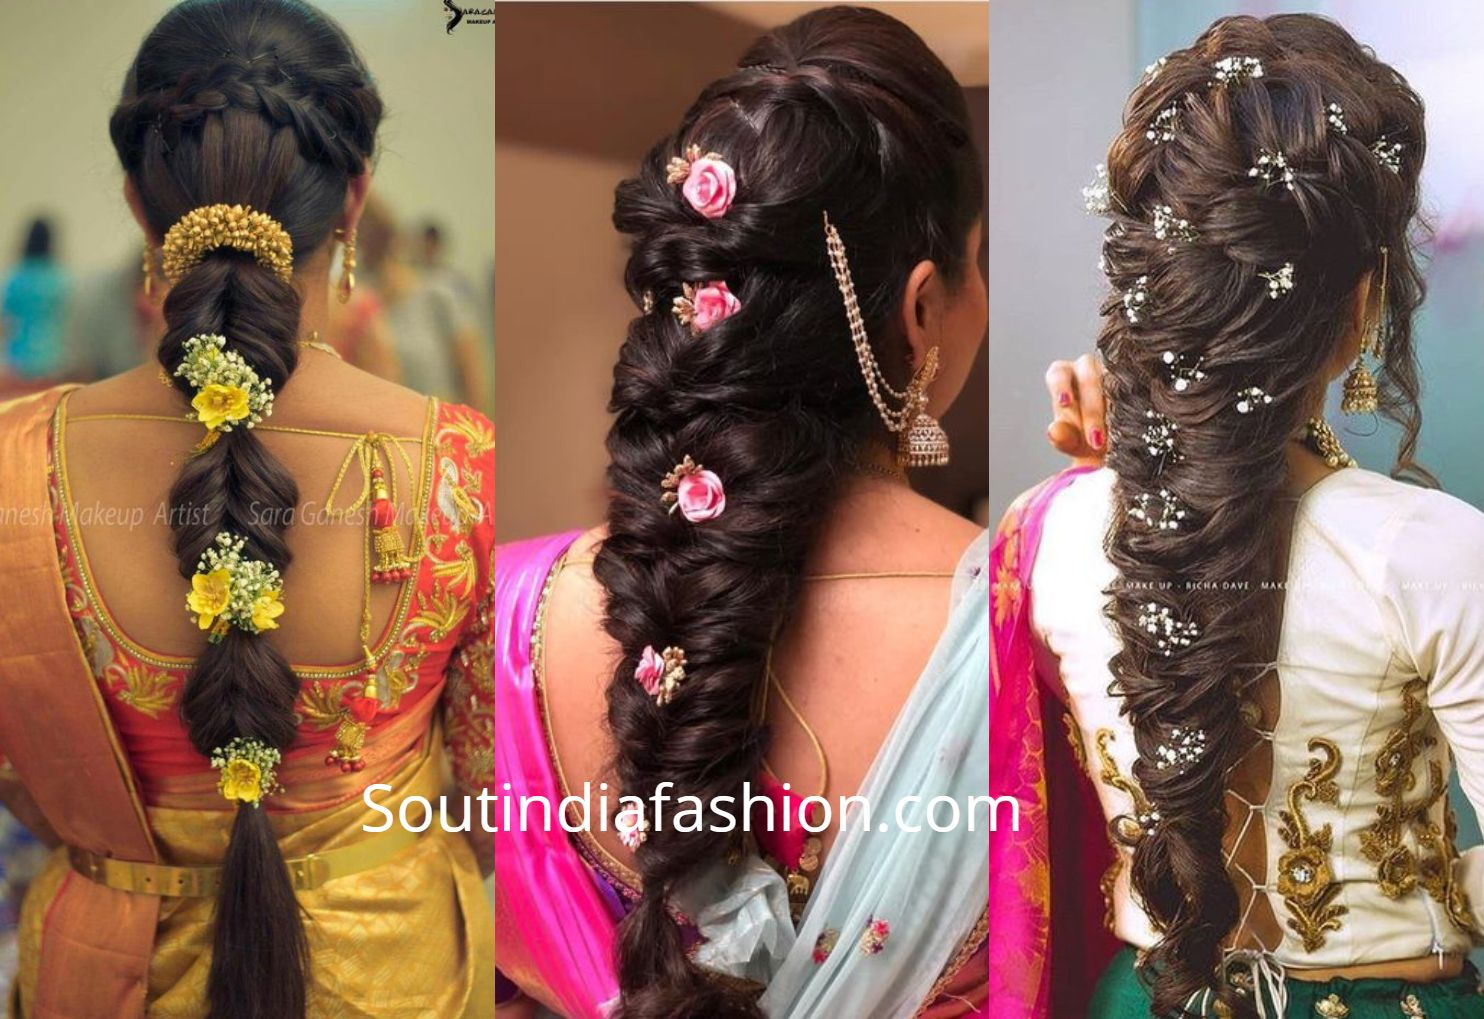 Top 10 South Indian Bridal Hairstyles For Weddings Engagement Etc Engagement Hairstyles Wedding Hairstyles For Long Hair Bridal Hairstyle For Reception